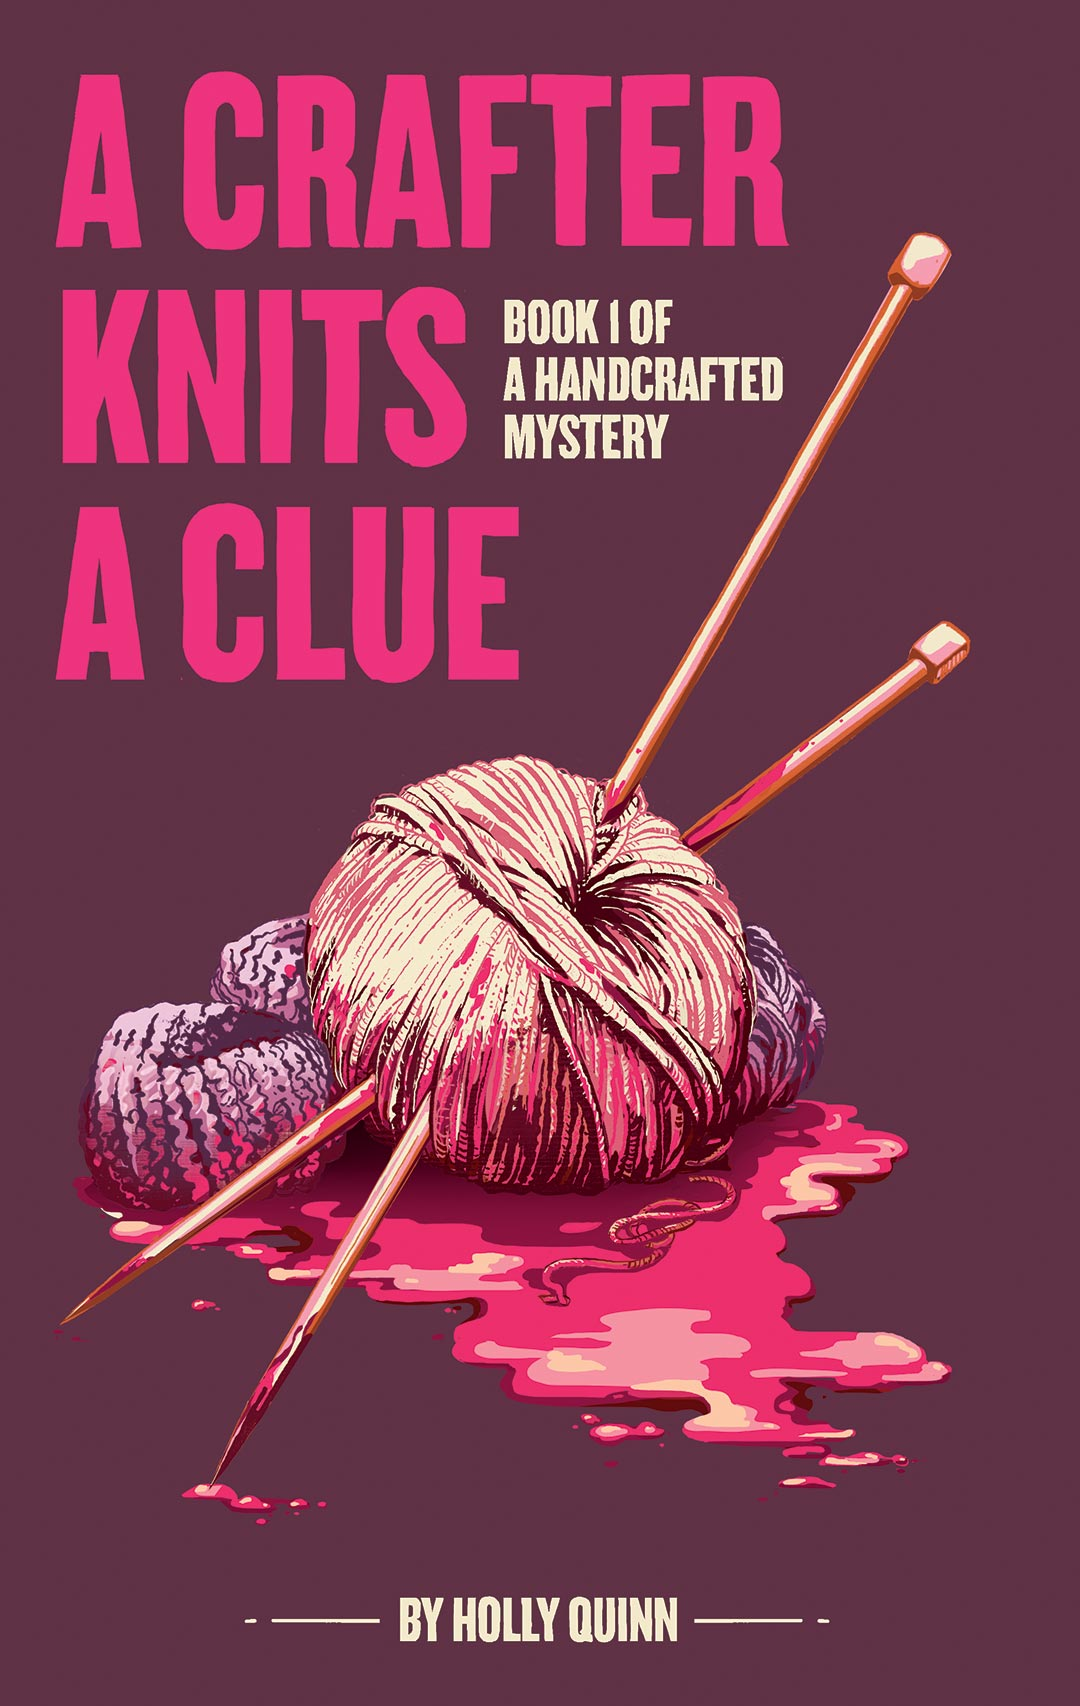 A Crafter Knits A Clue, Book Cover Art | Jacqui Oakley Illustration | Harlequin Book